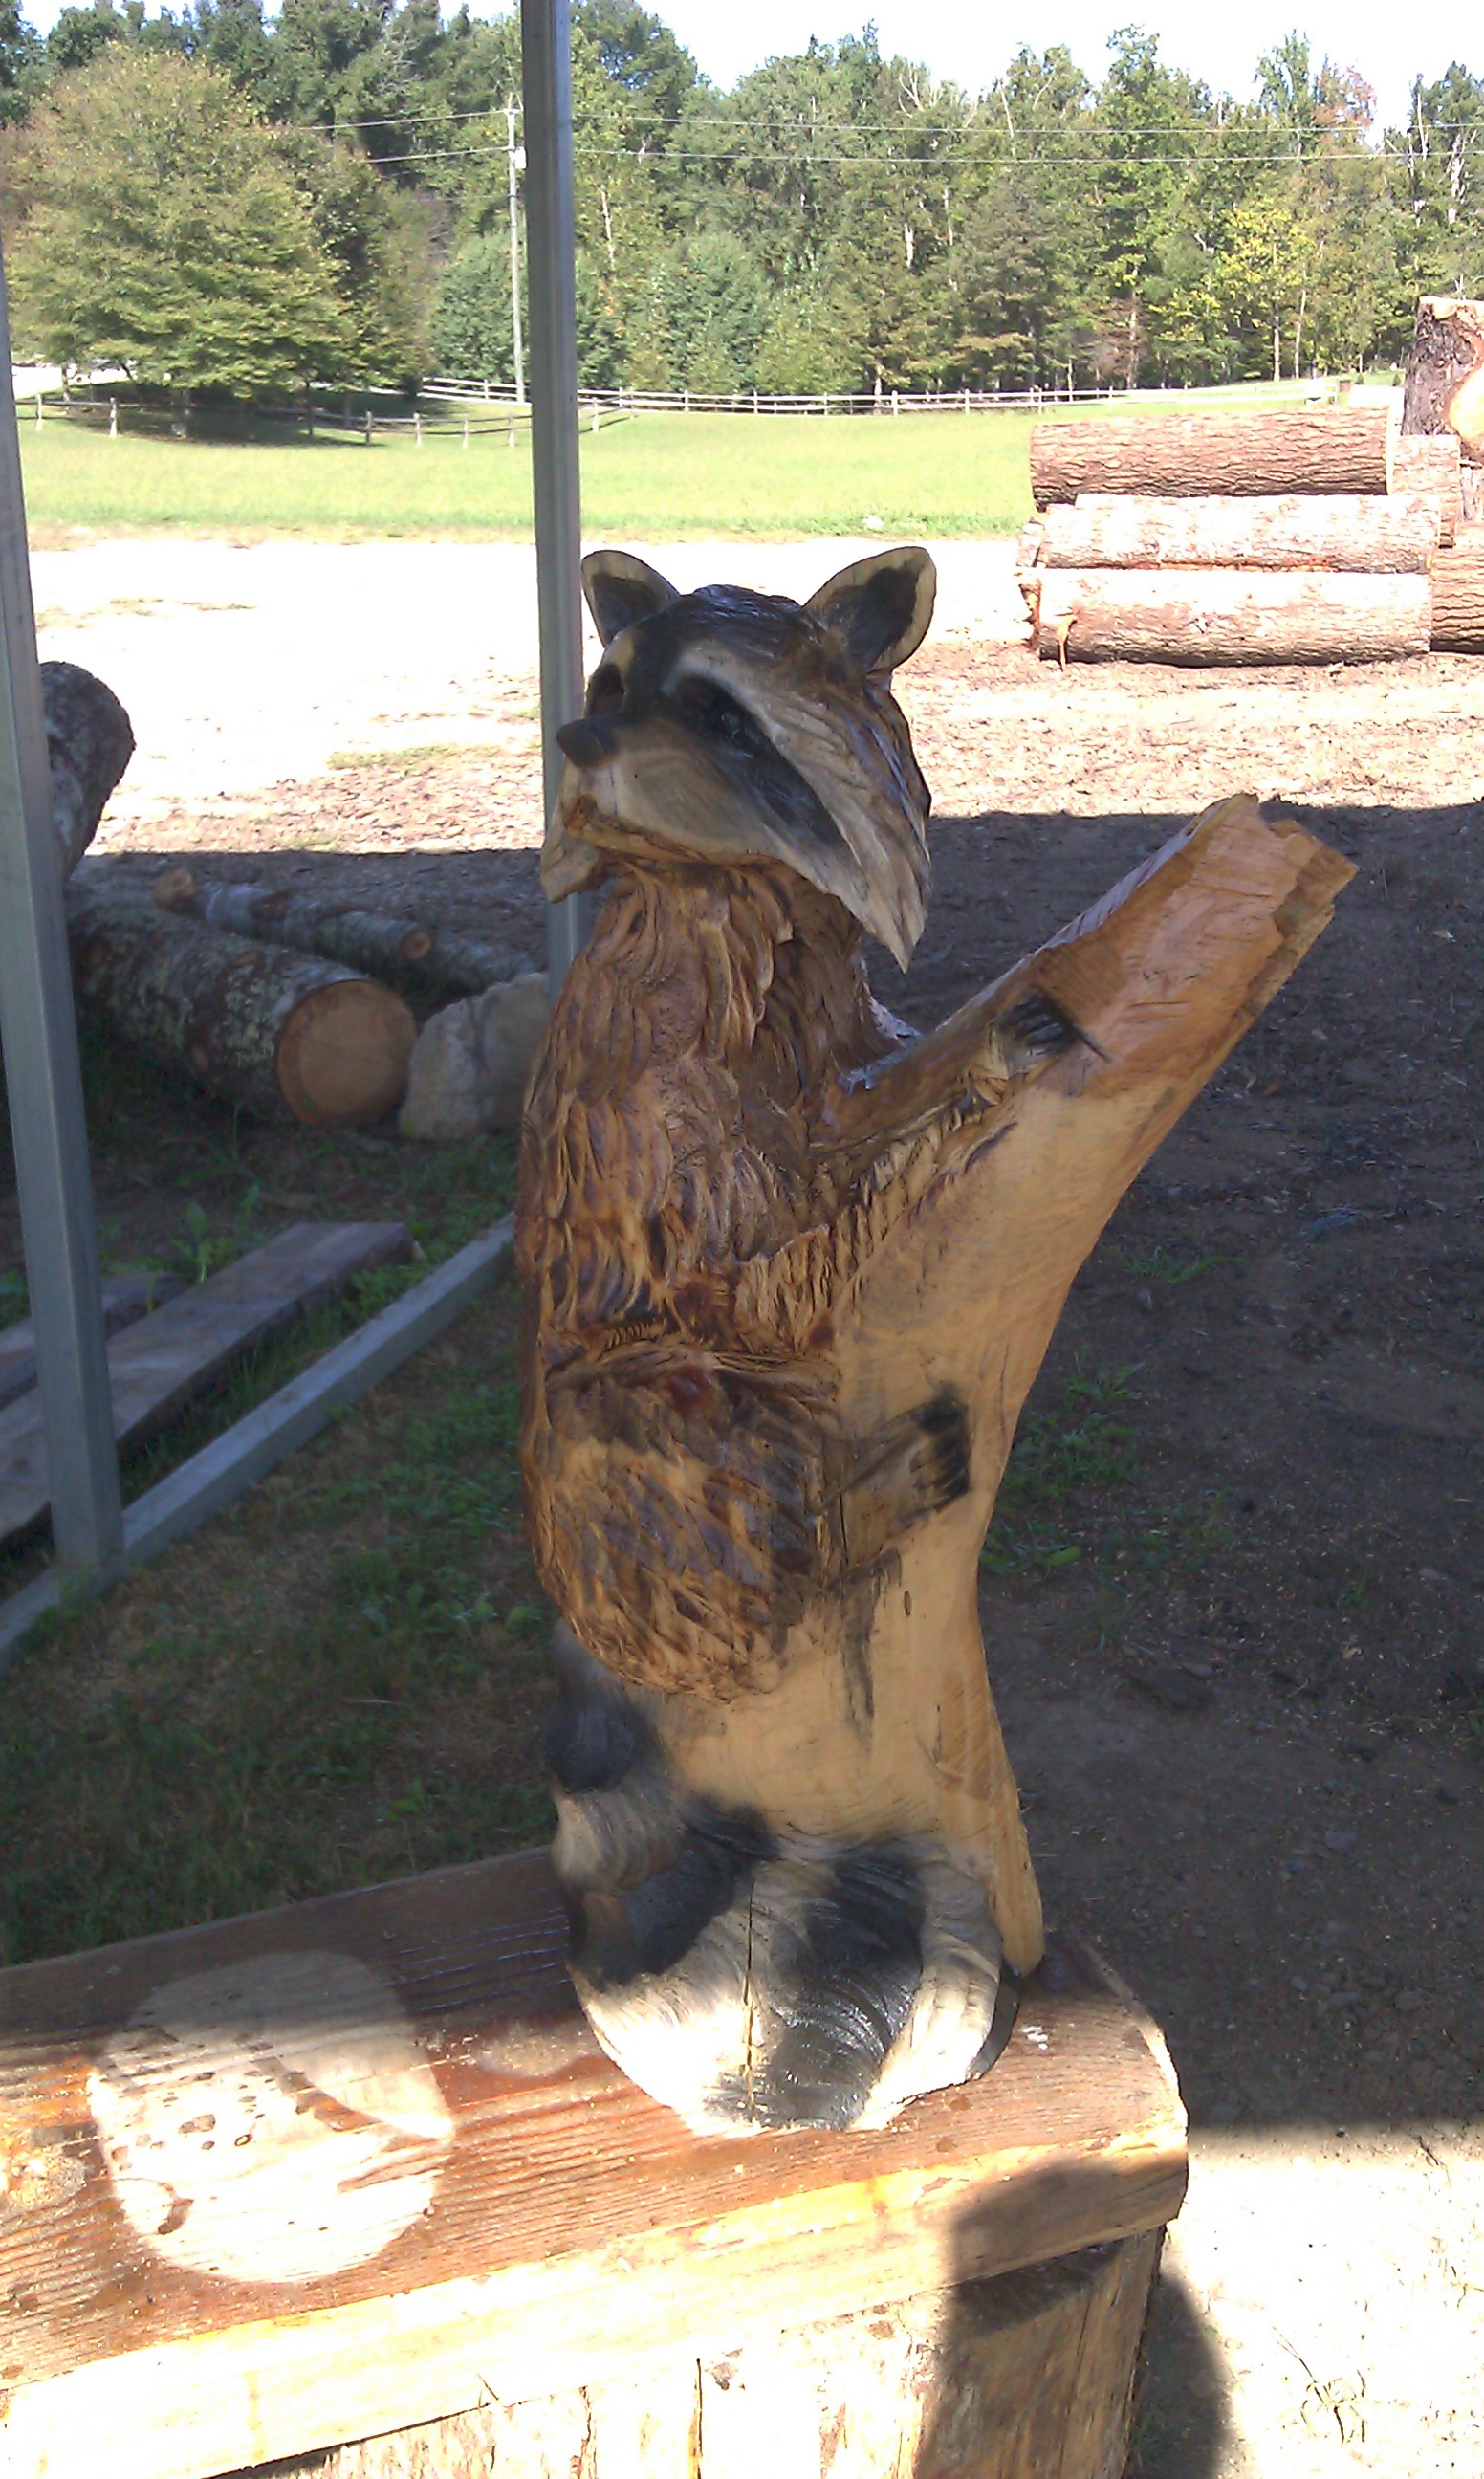 Chainsawcarvings raccoons